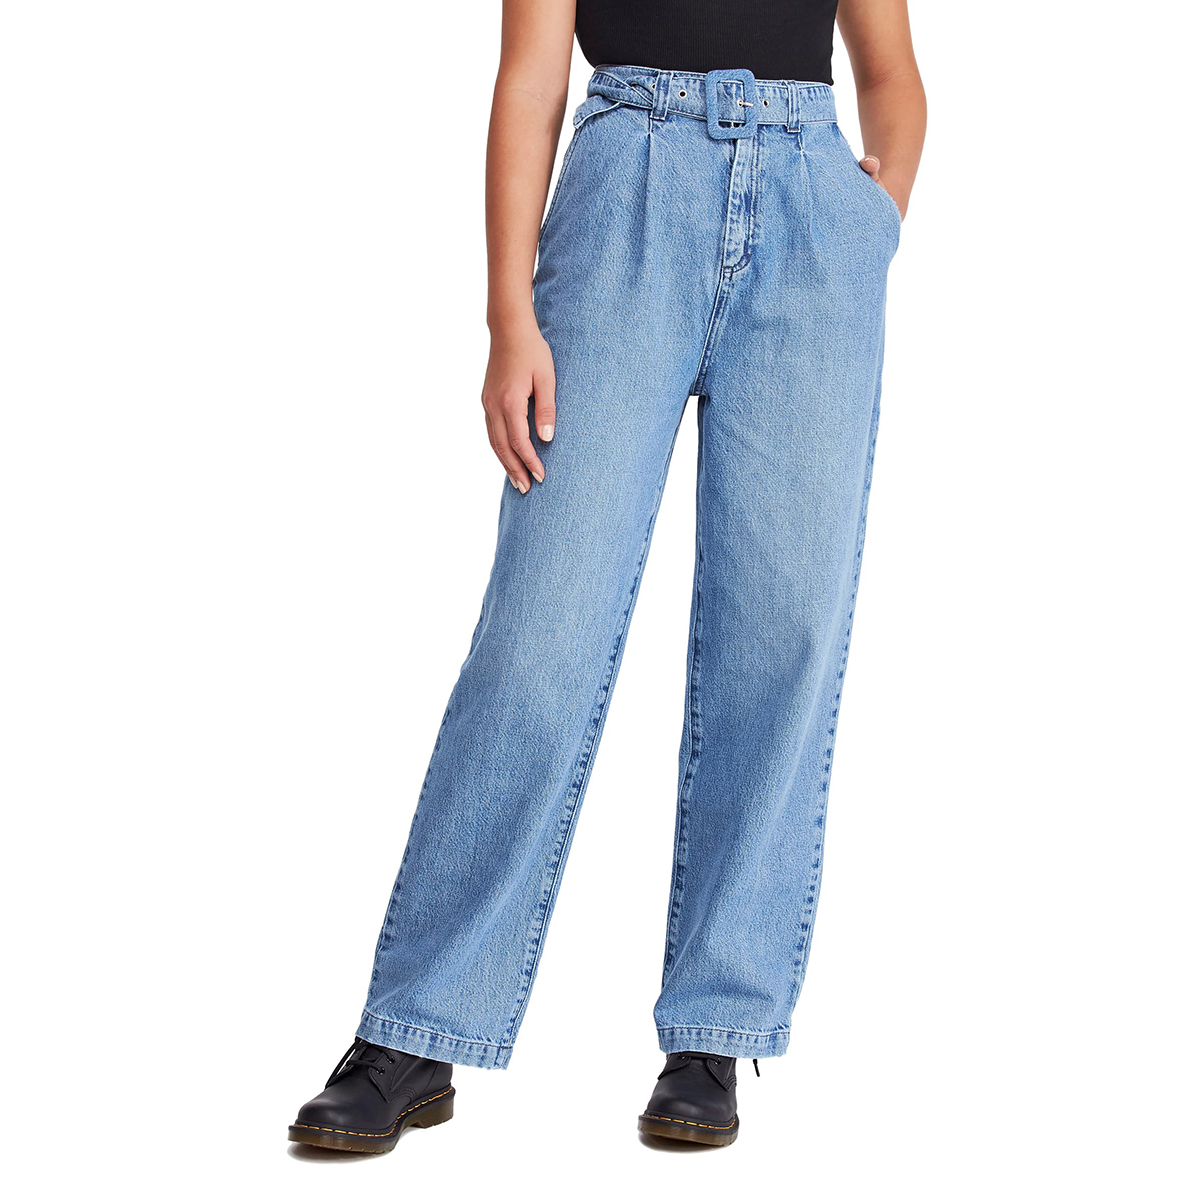 '80s Acid Wash HIgh Waist Mom Jeans BDG URBAN OUTFITTERS